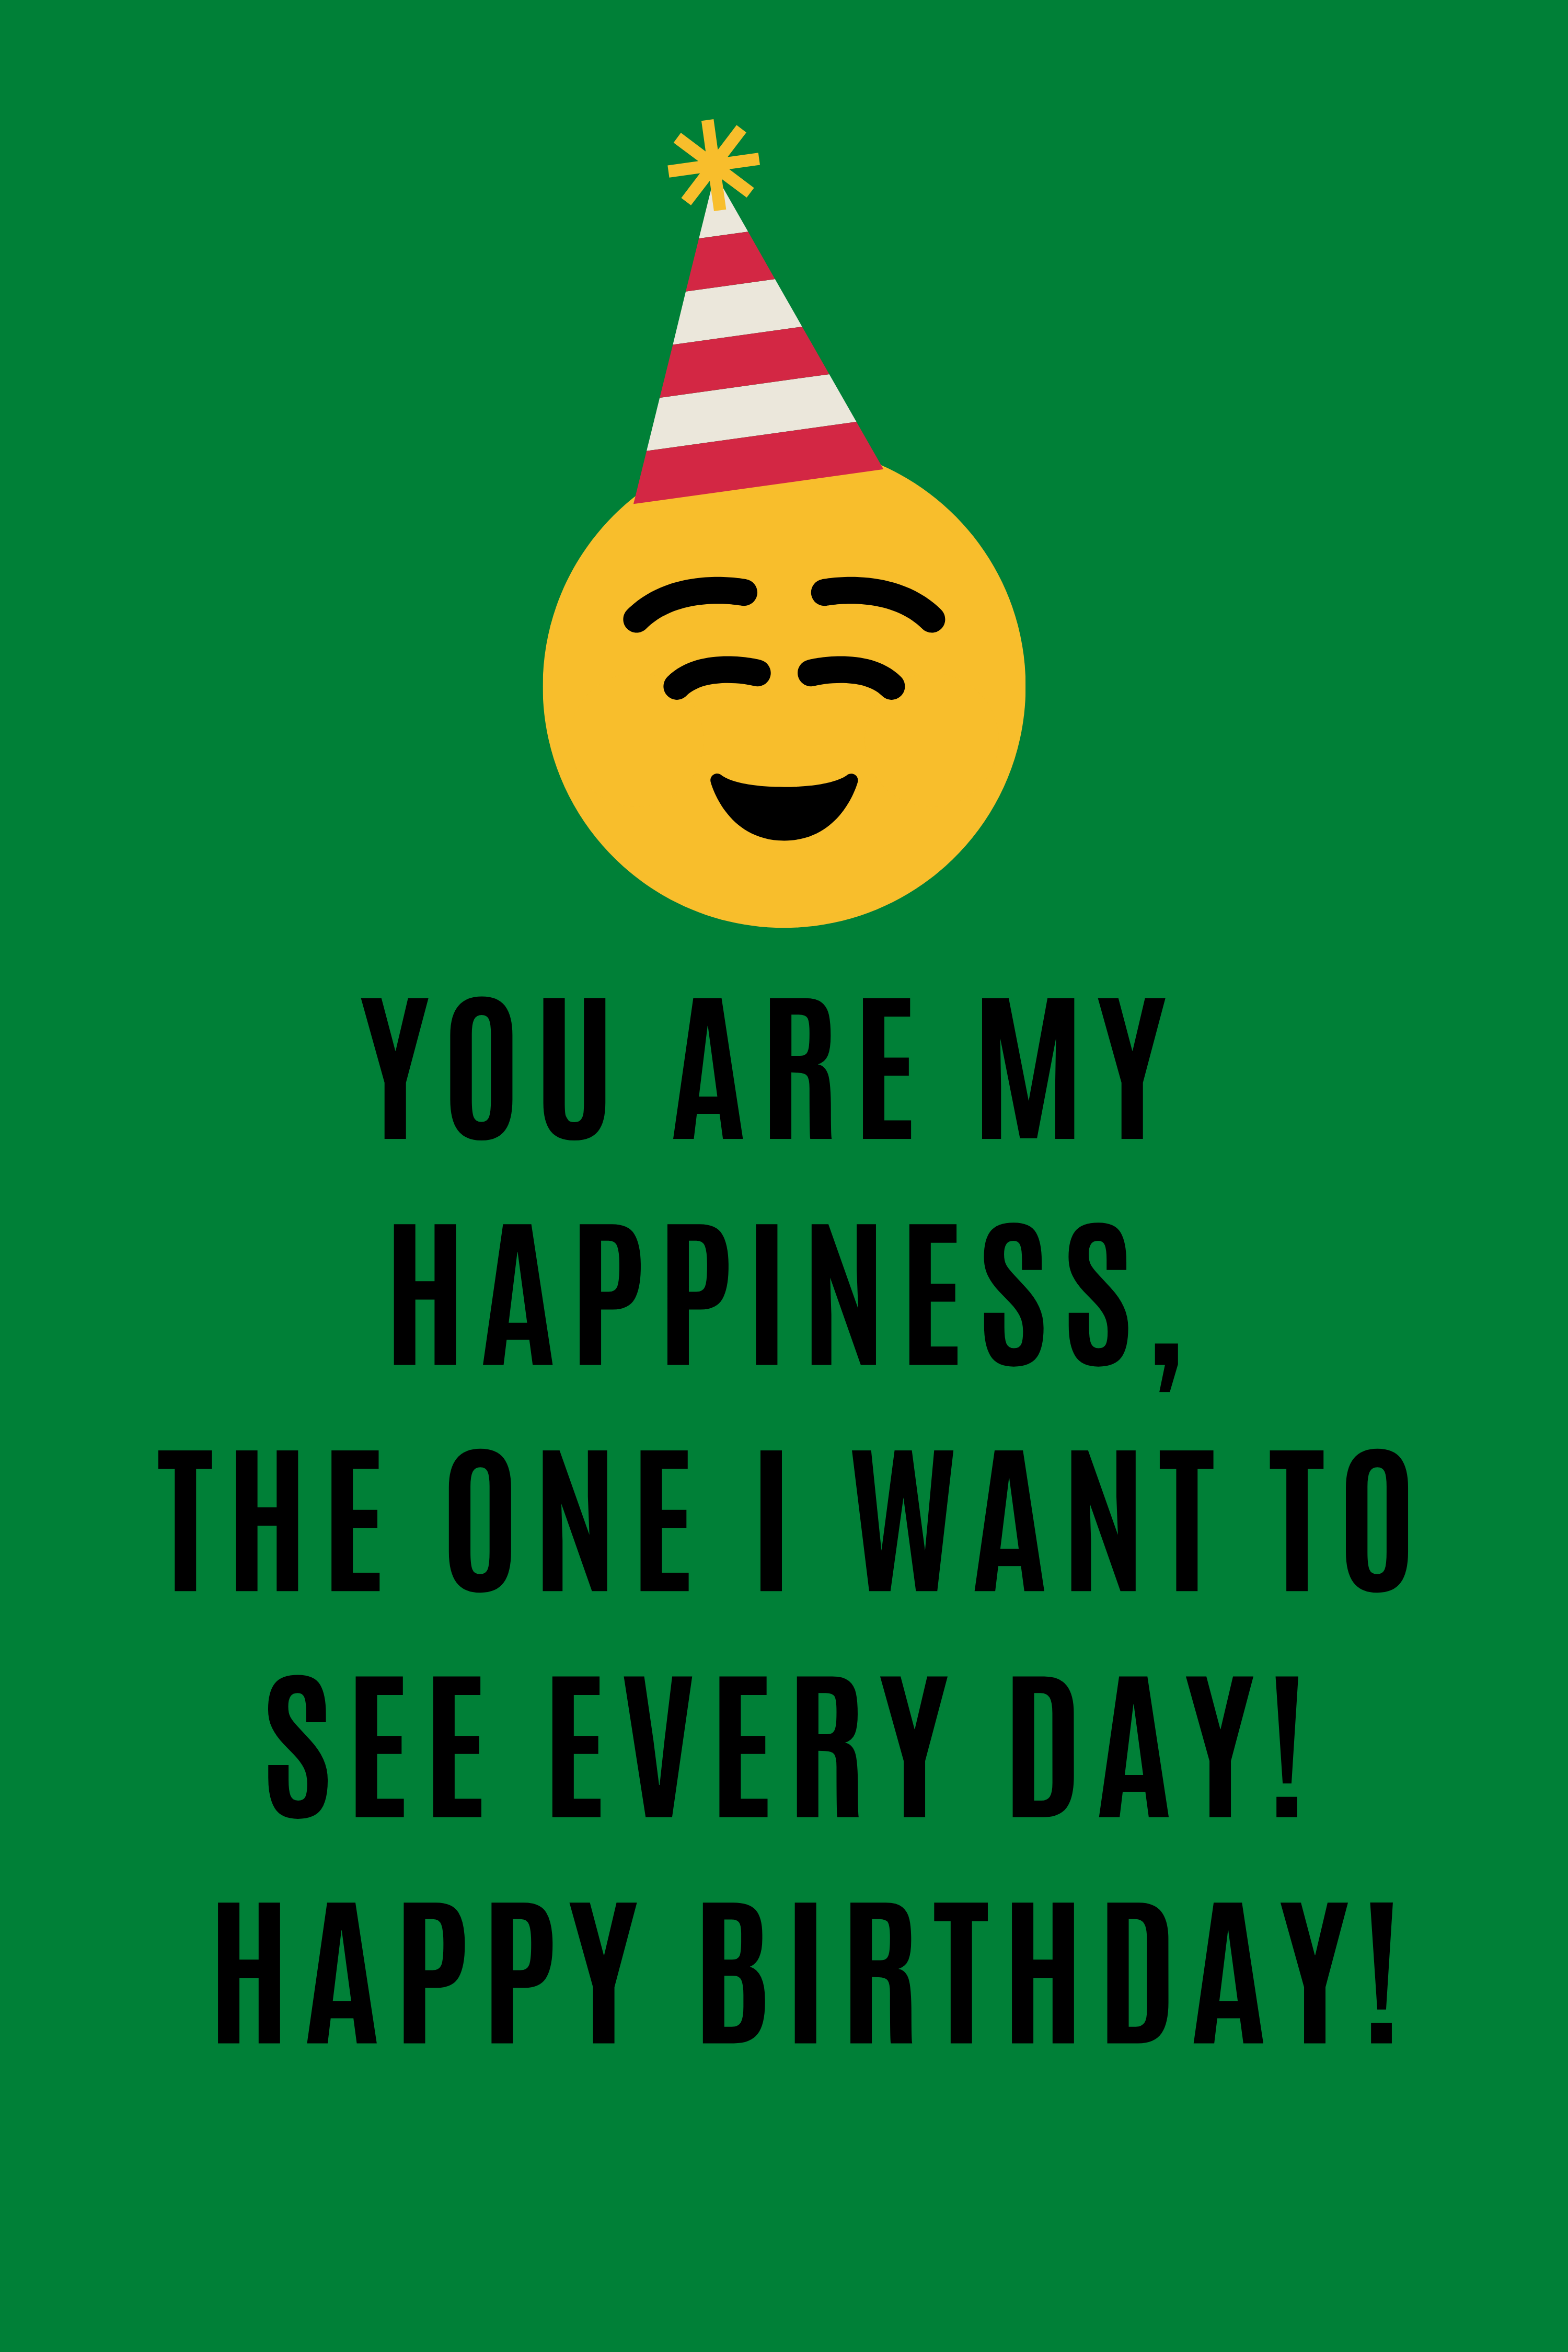 Happy Birthday Quotes for husband on his birthday